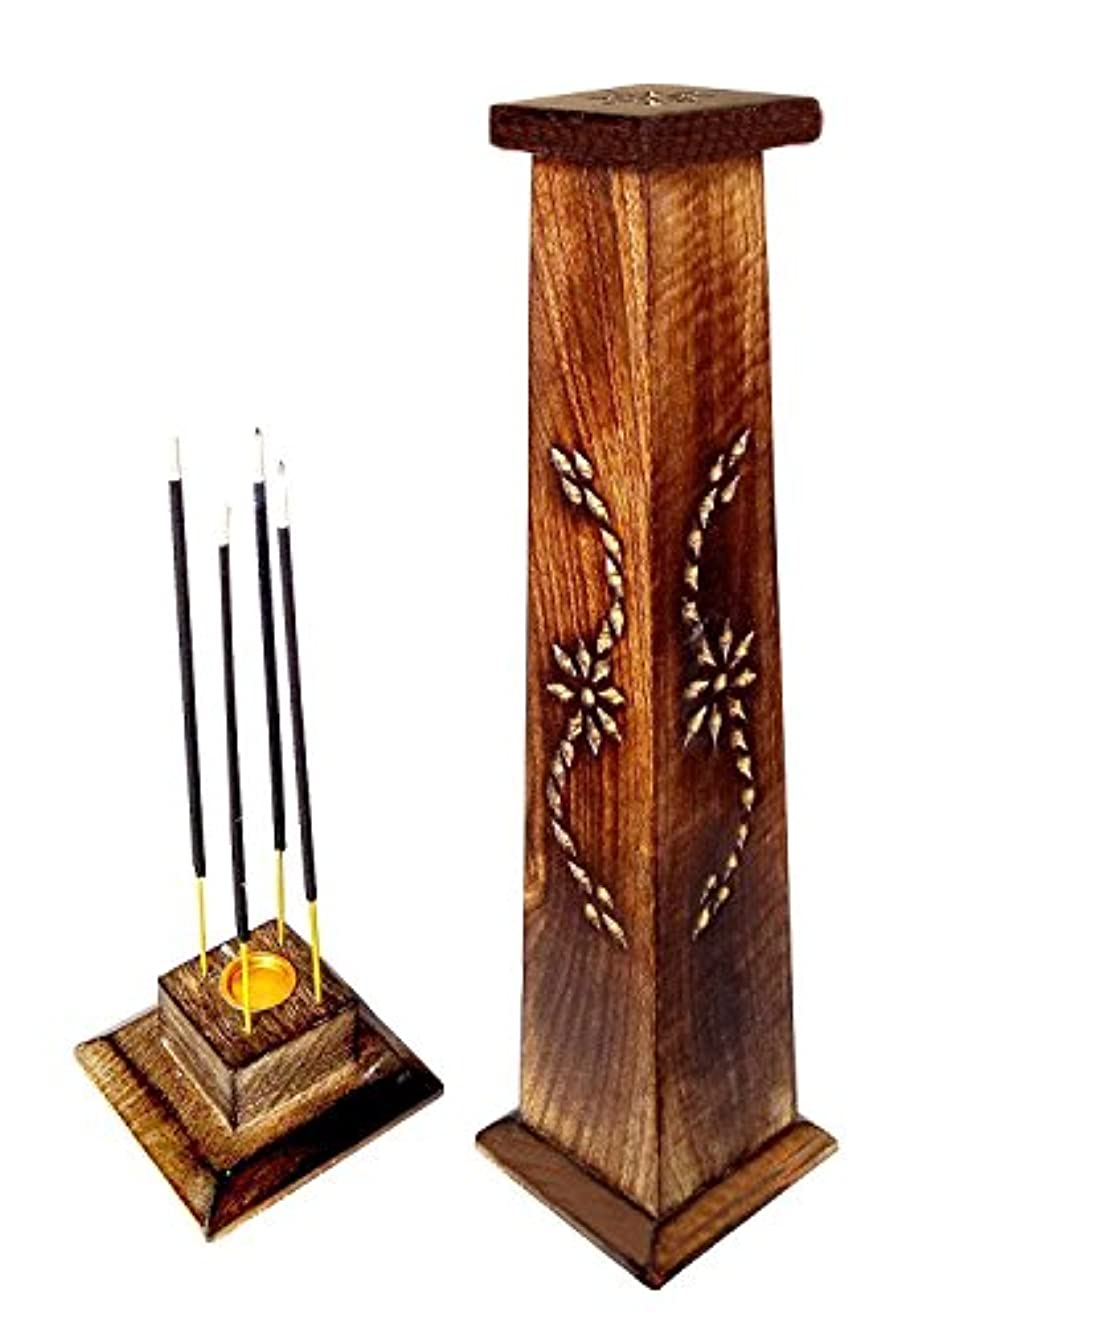 ギャンブル観客陪審木製香炉Ideal for Aromatherapy、禅、Spa、Vastu、レイキChakra Votive Candle Garden Incense Tower 12